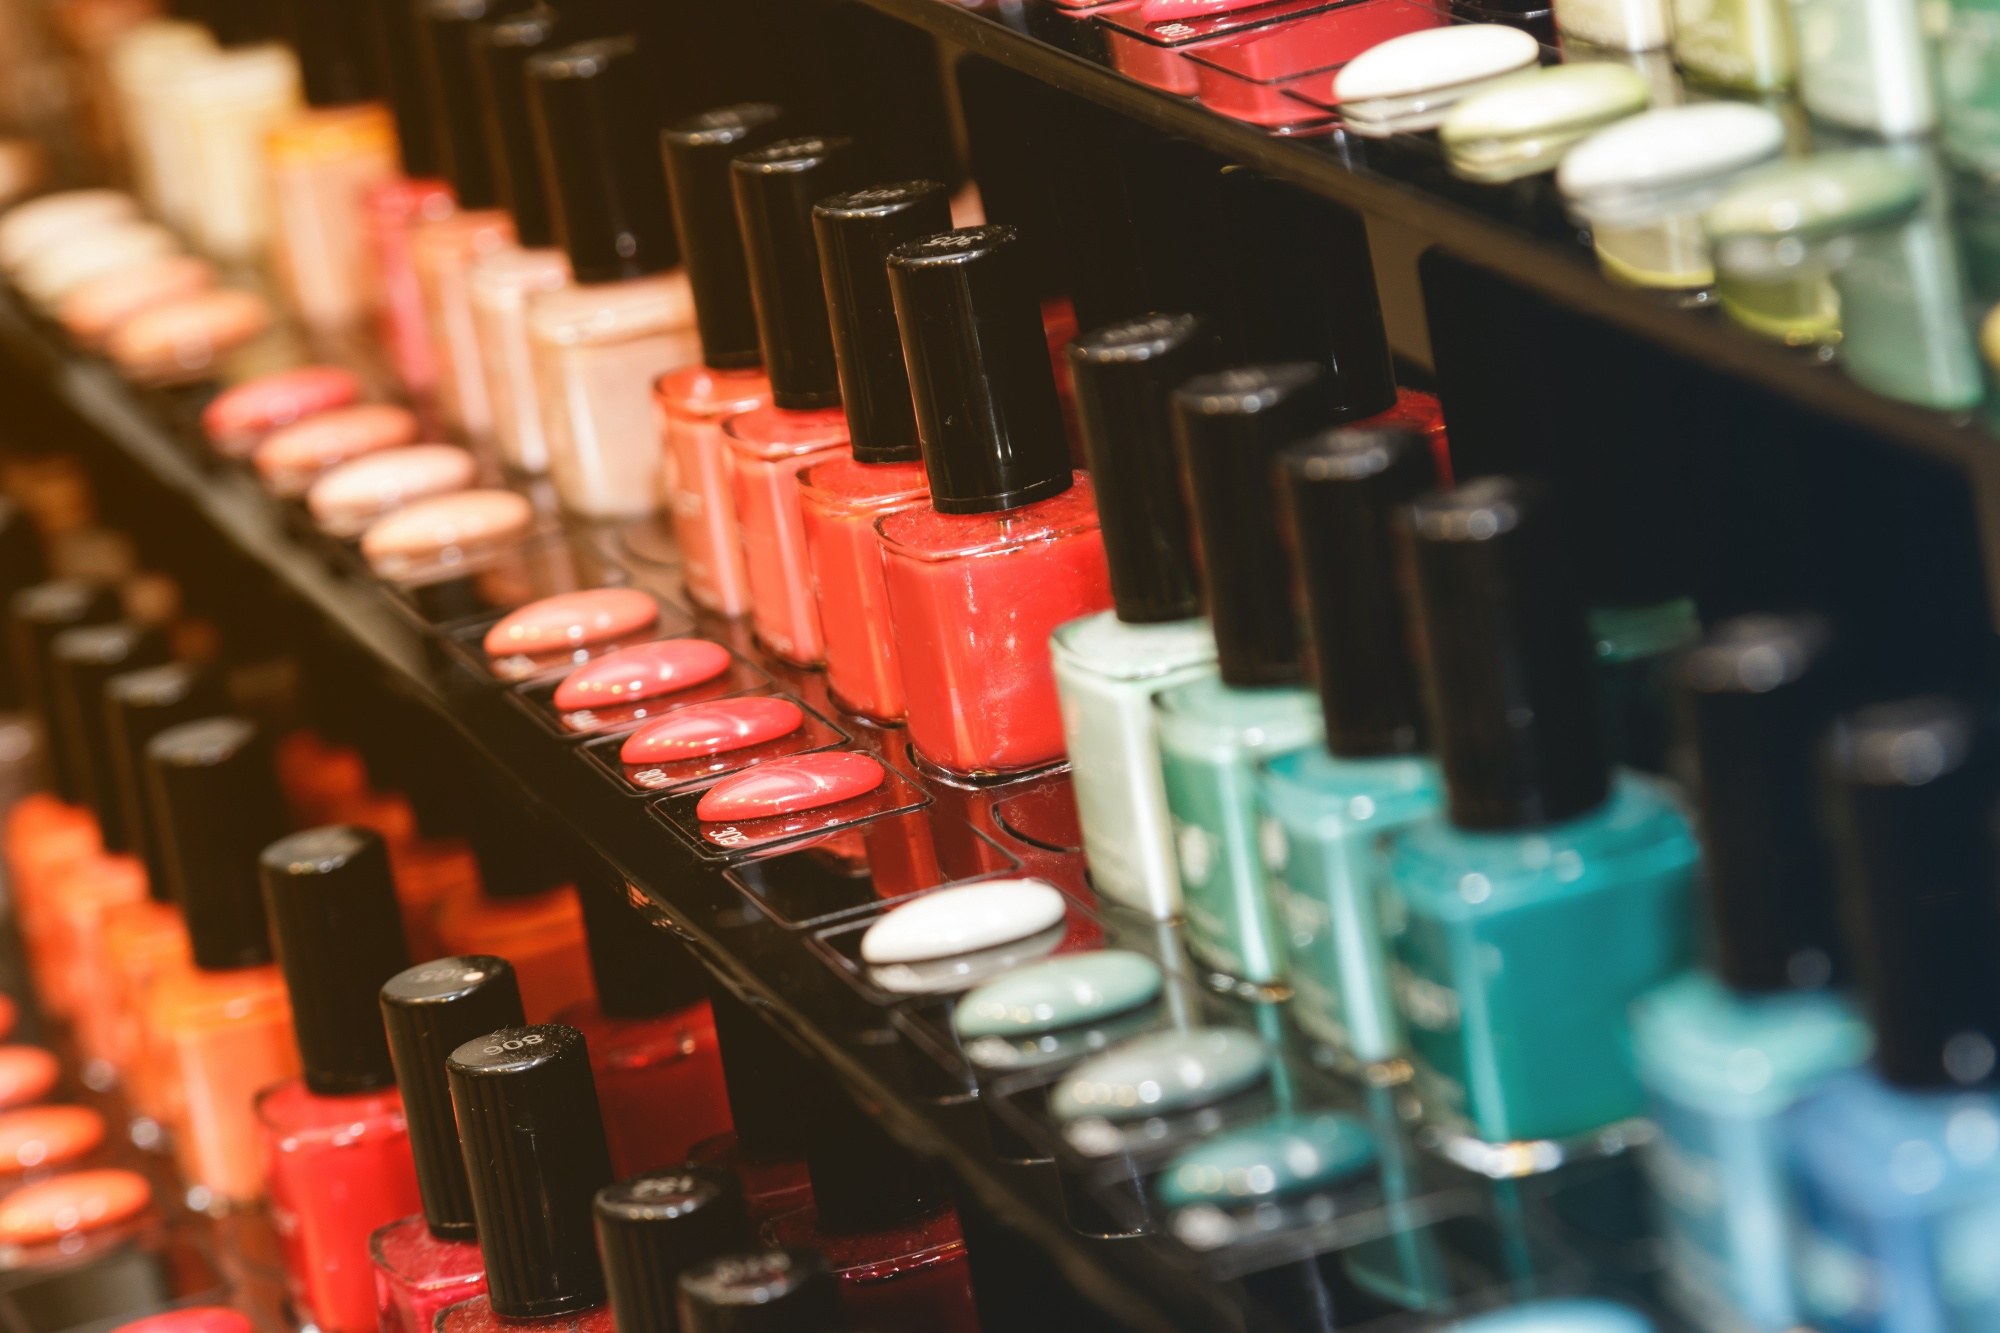 best affordable beauty finds nail polishes in a large store display